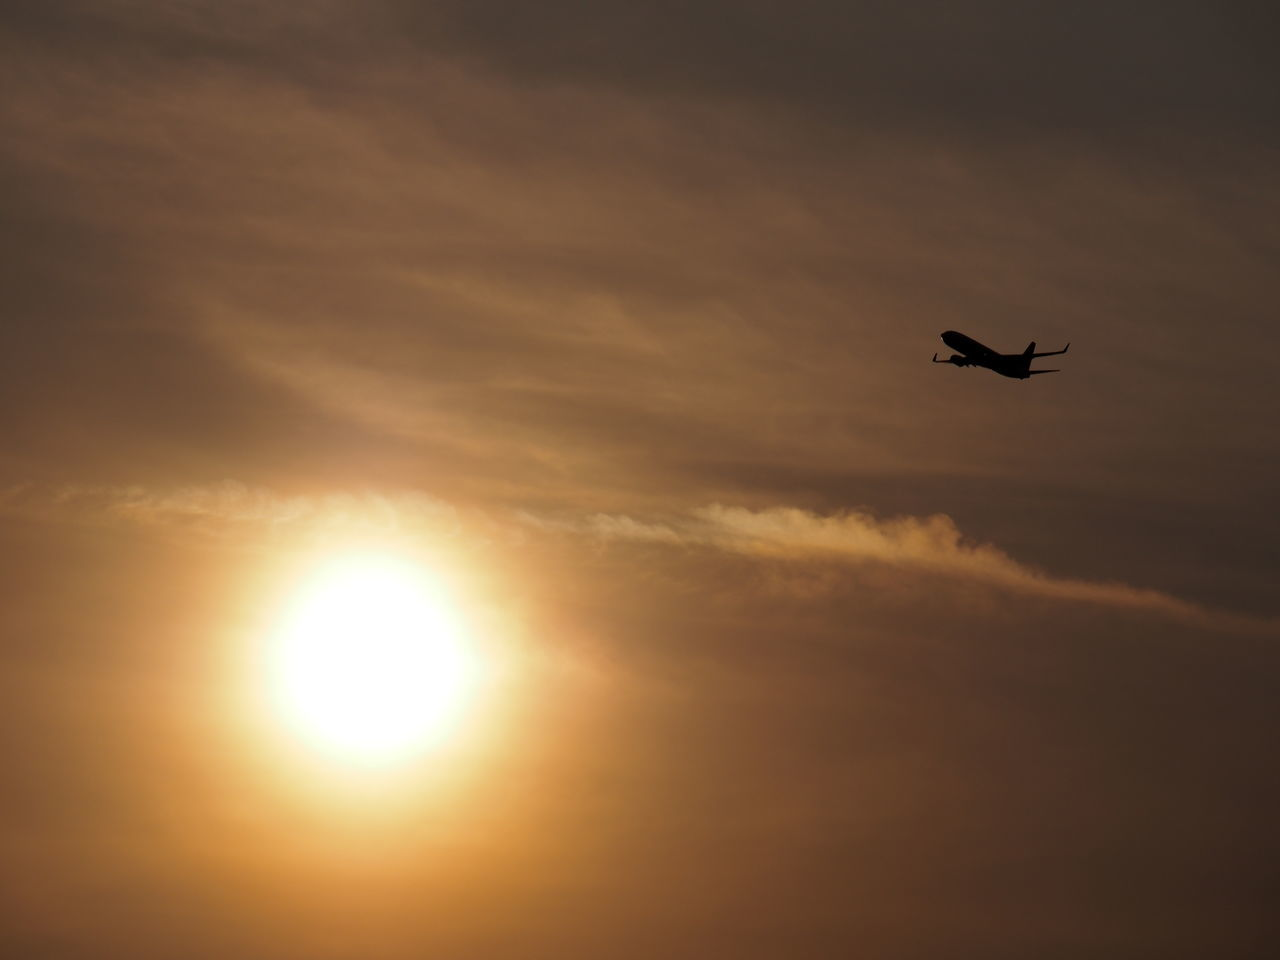 sunset, flying, sky, sun, silhouette, cloud - sky, nature, beauty in nature, mid-air, no people, outdoors, low angle view, sunlight, scenics, airplane, bird, animal themes, day